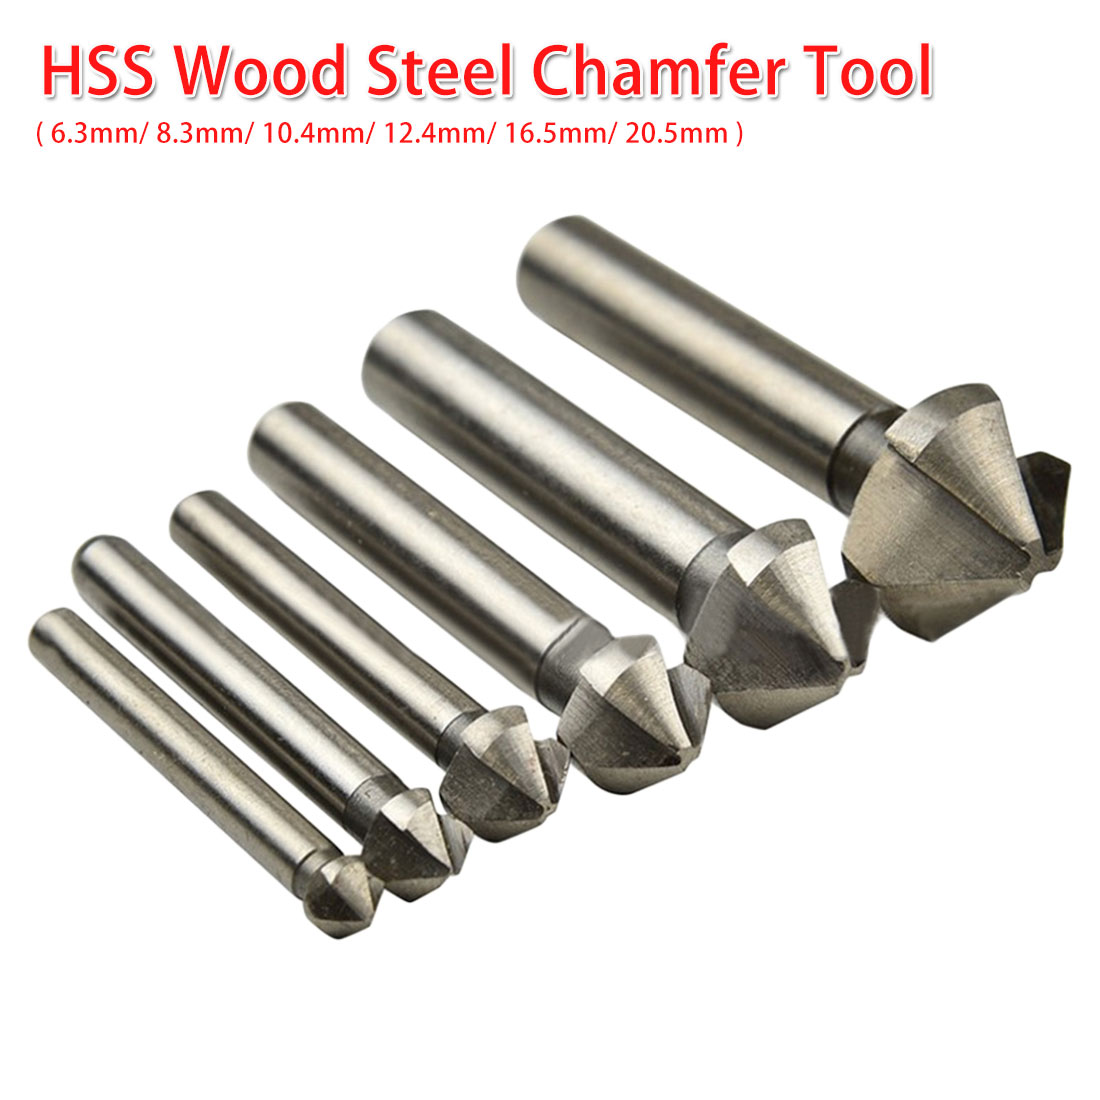 90 Degree 3 Flute Countersink Drill Bit Round Handle HSS Wood Steel Chamfer Cutter Tool 6.3-20.5mm For Carbon Steel/ PVC/Wood